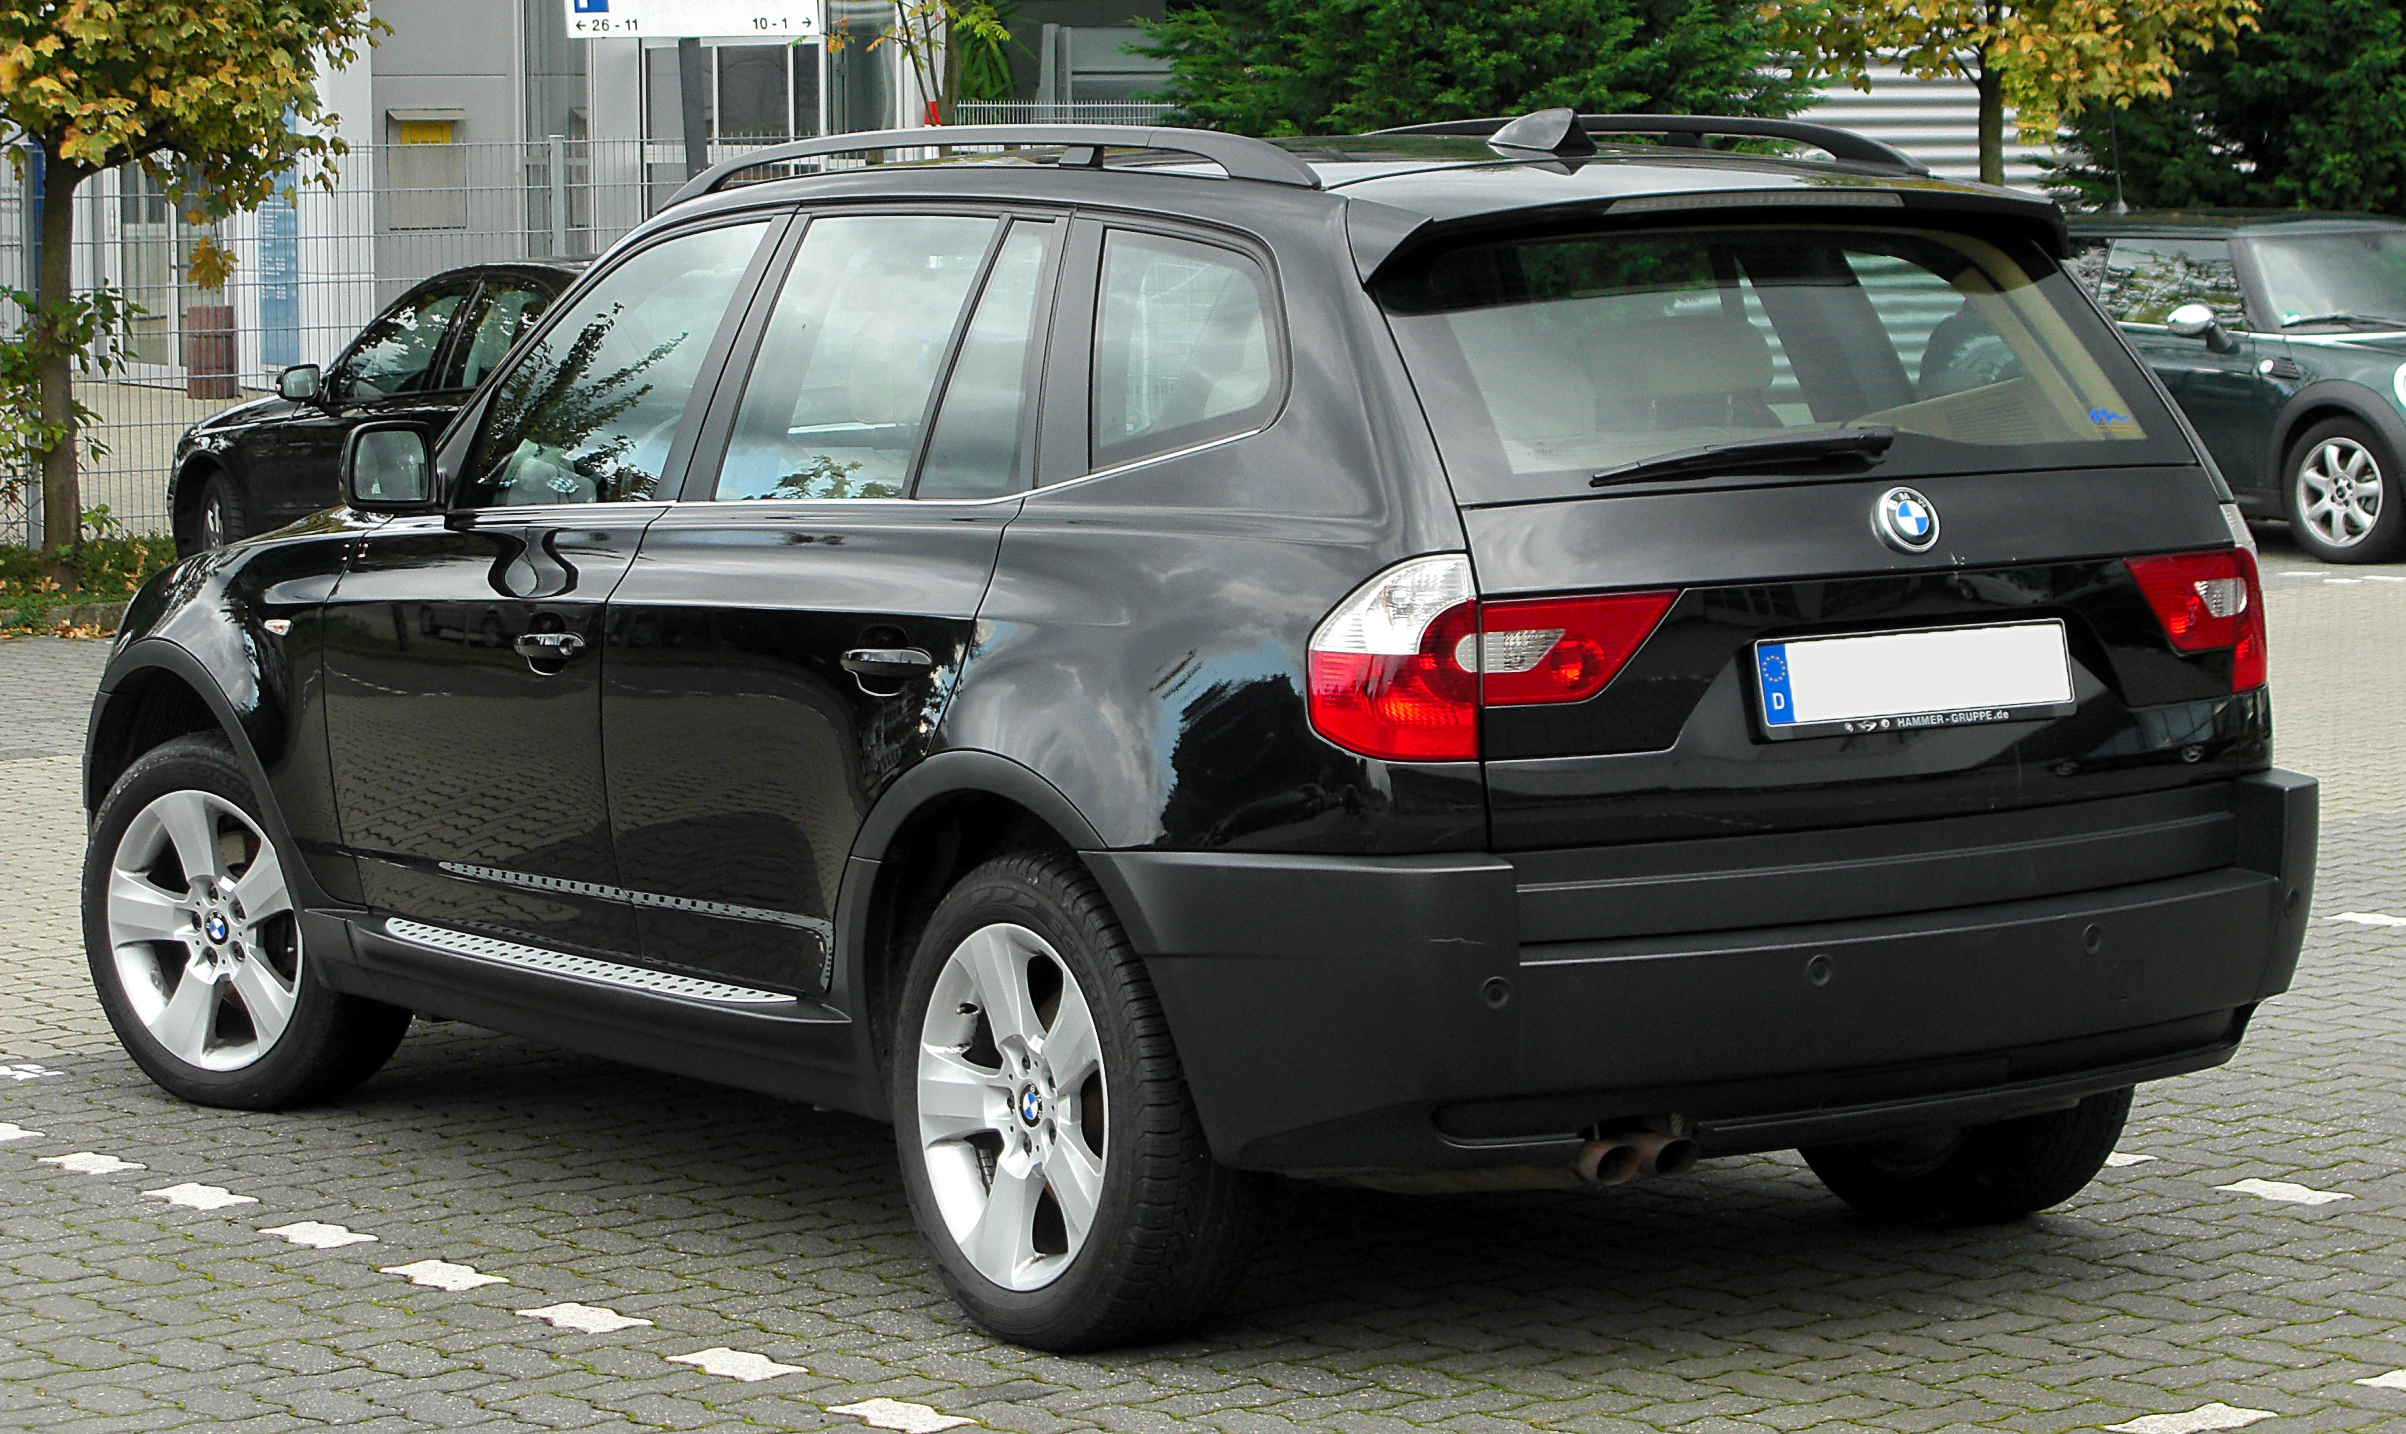 file bmw x3 e83 facelift rear wikimedia commons. Black Bedroom Furniture Sets. Home Design Ideas